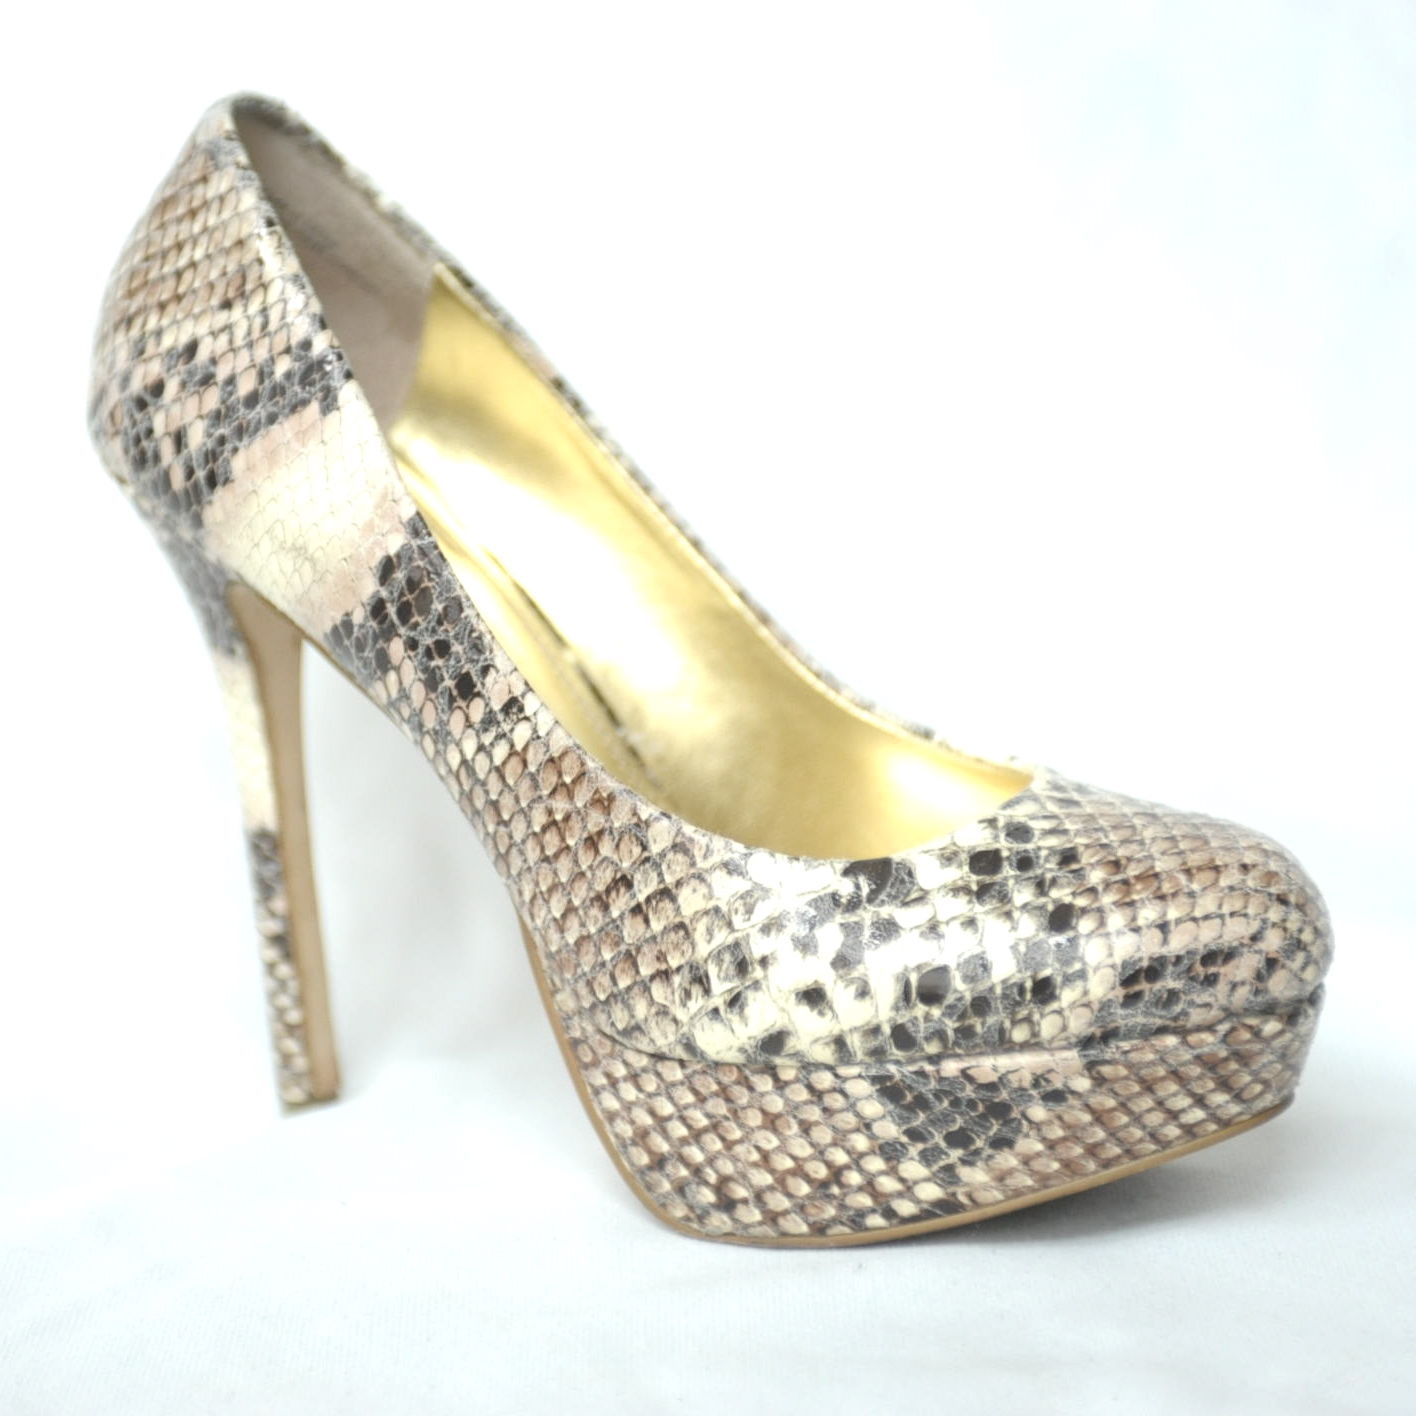 b84ab4974bb Bakers MELINA Snakeskin Print 5+ IN High and 22 similar items